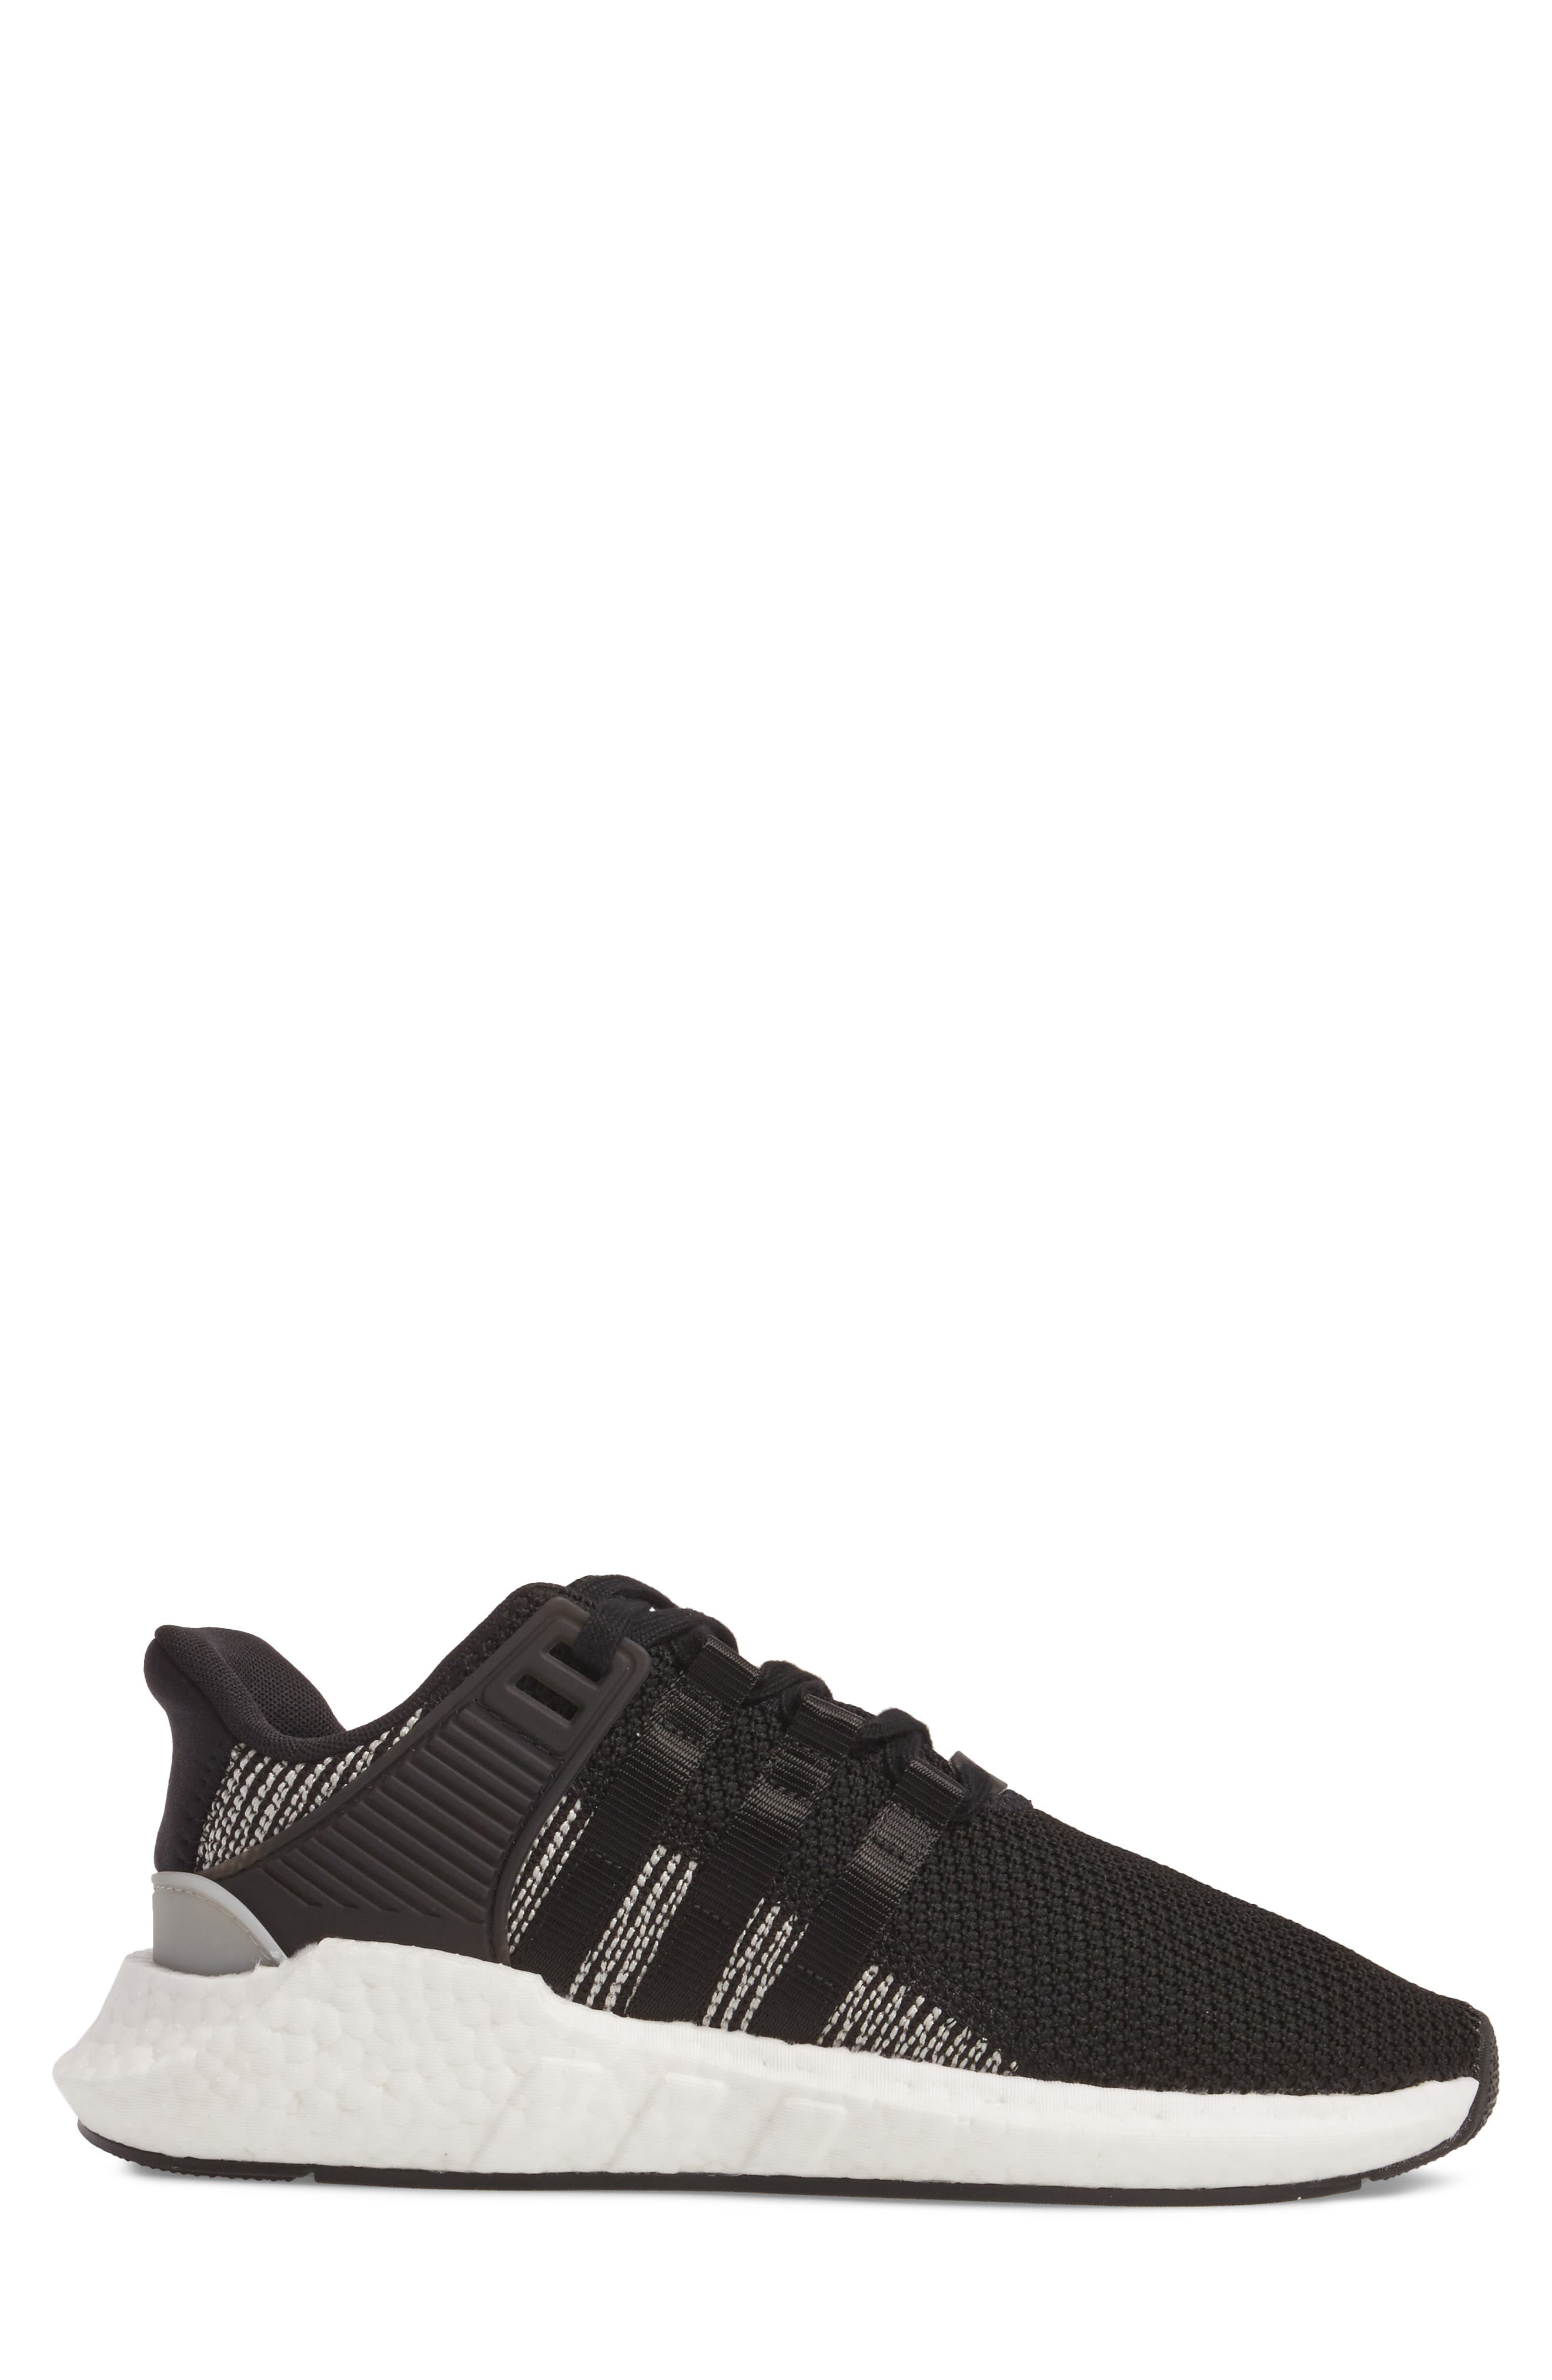 ADIDAS,                             EQT Support 93/17 Sneaker,                             Alternate thumbnail 3, color,                             001